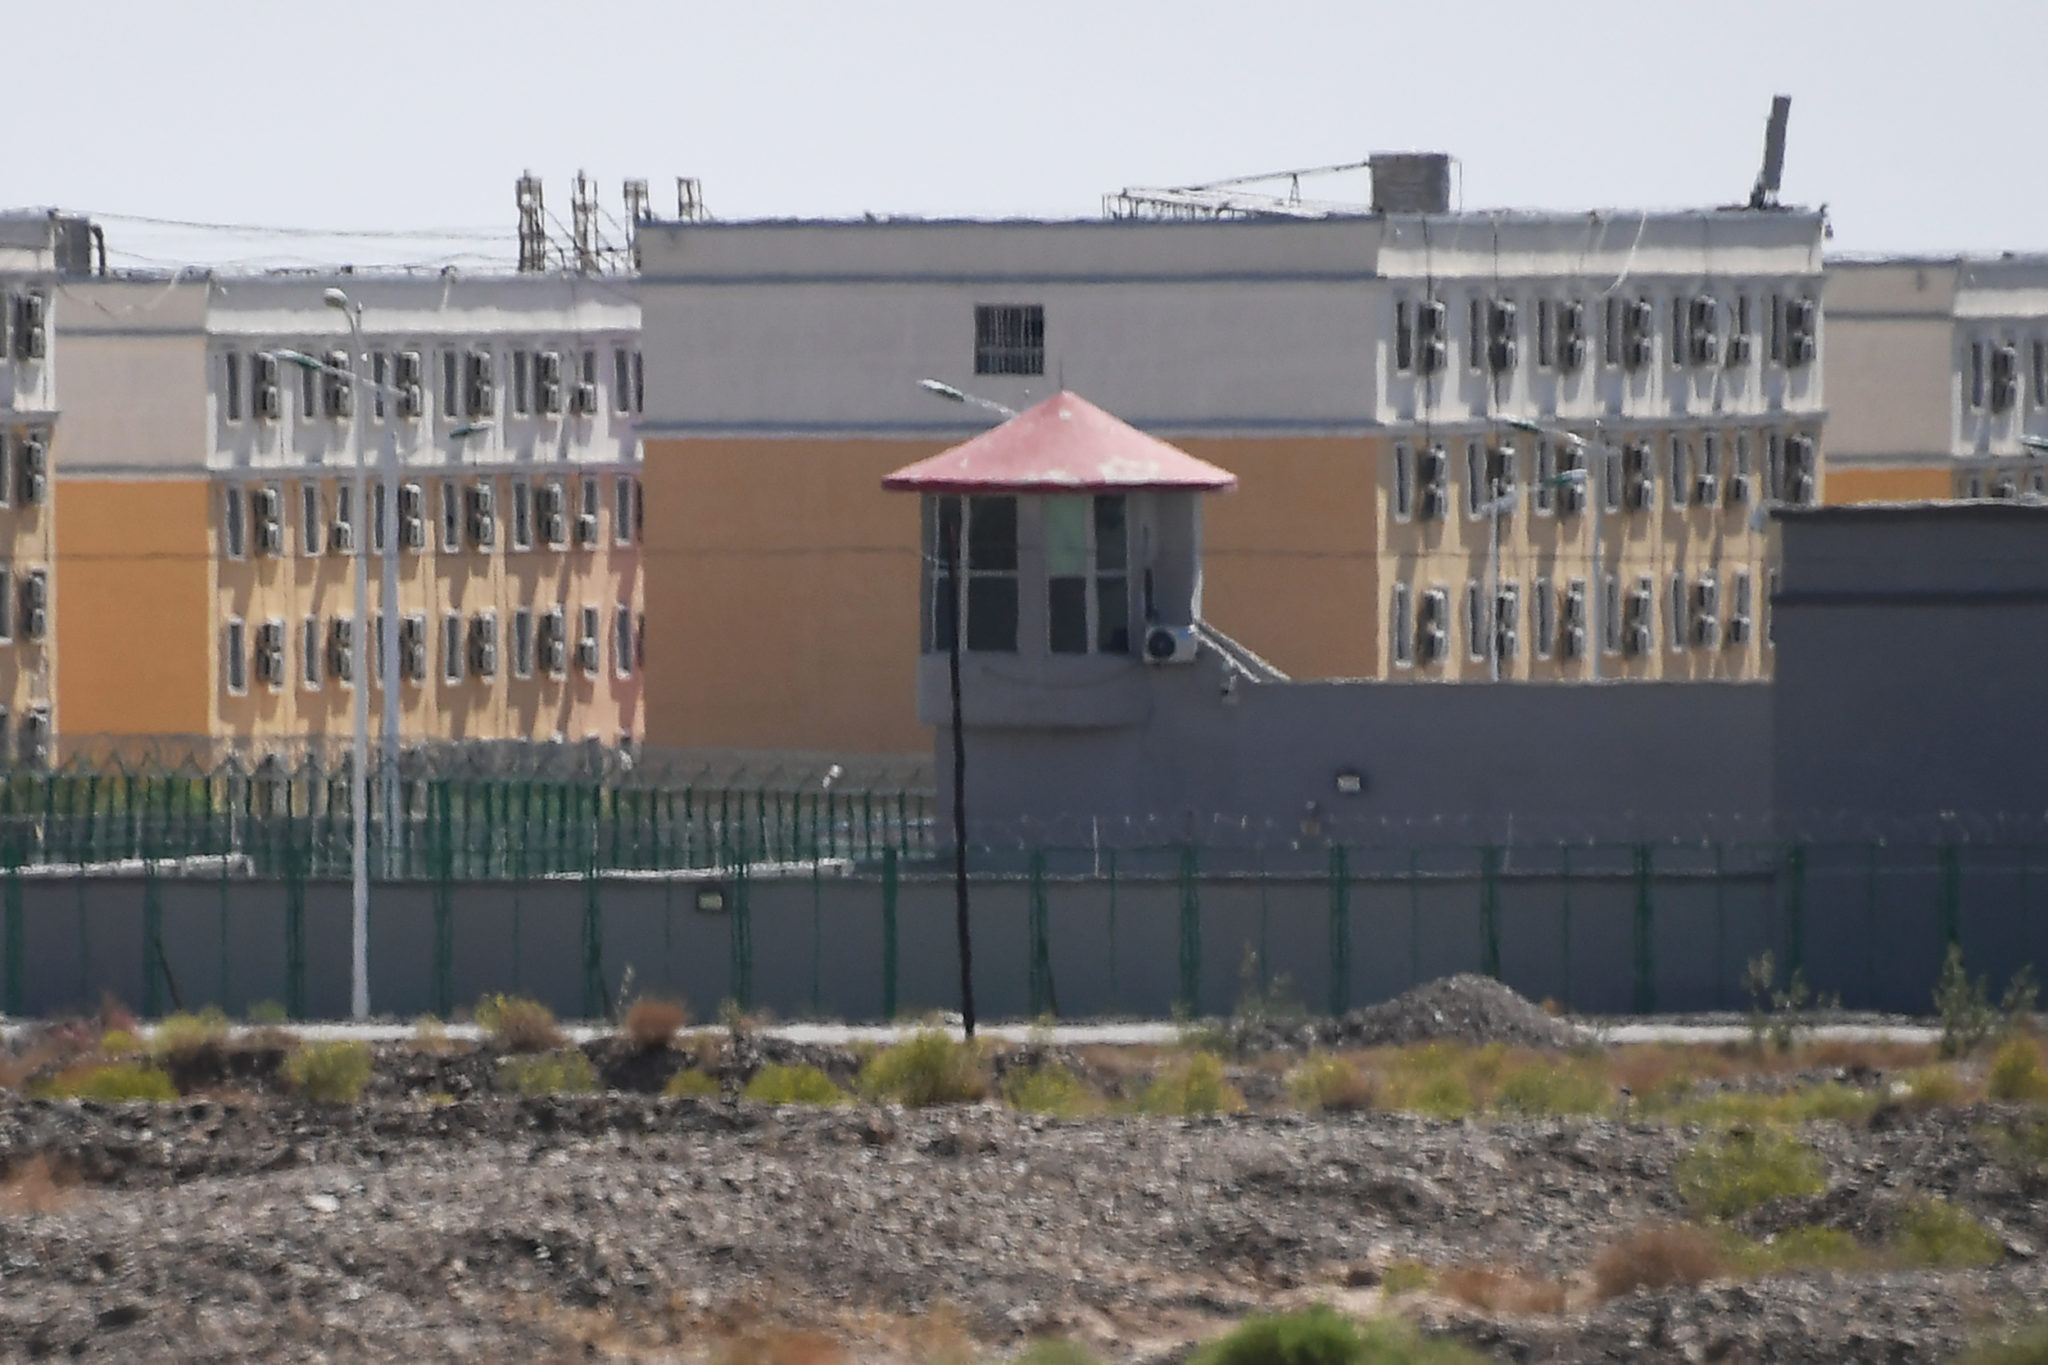 This photo taken on June 2, 2019 shows buildings at the Artux City Vocational Skills Education Training Service Center, believed to be a re-education camp where mostly Muslim ethnic minorities are detained, north of Kashgar in China's northwestern Xinjiang region. (GREG BAKER/AFP via Getty Images)